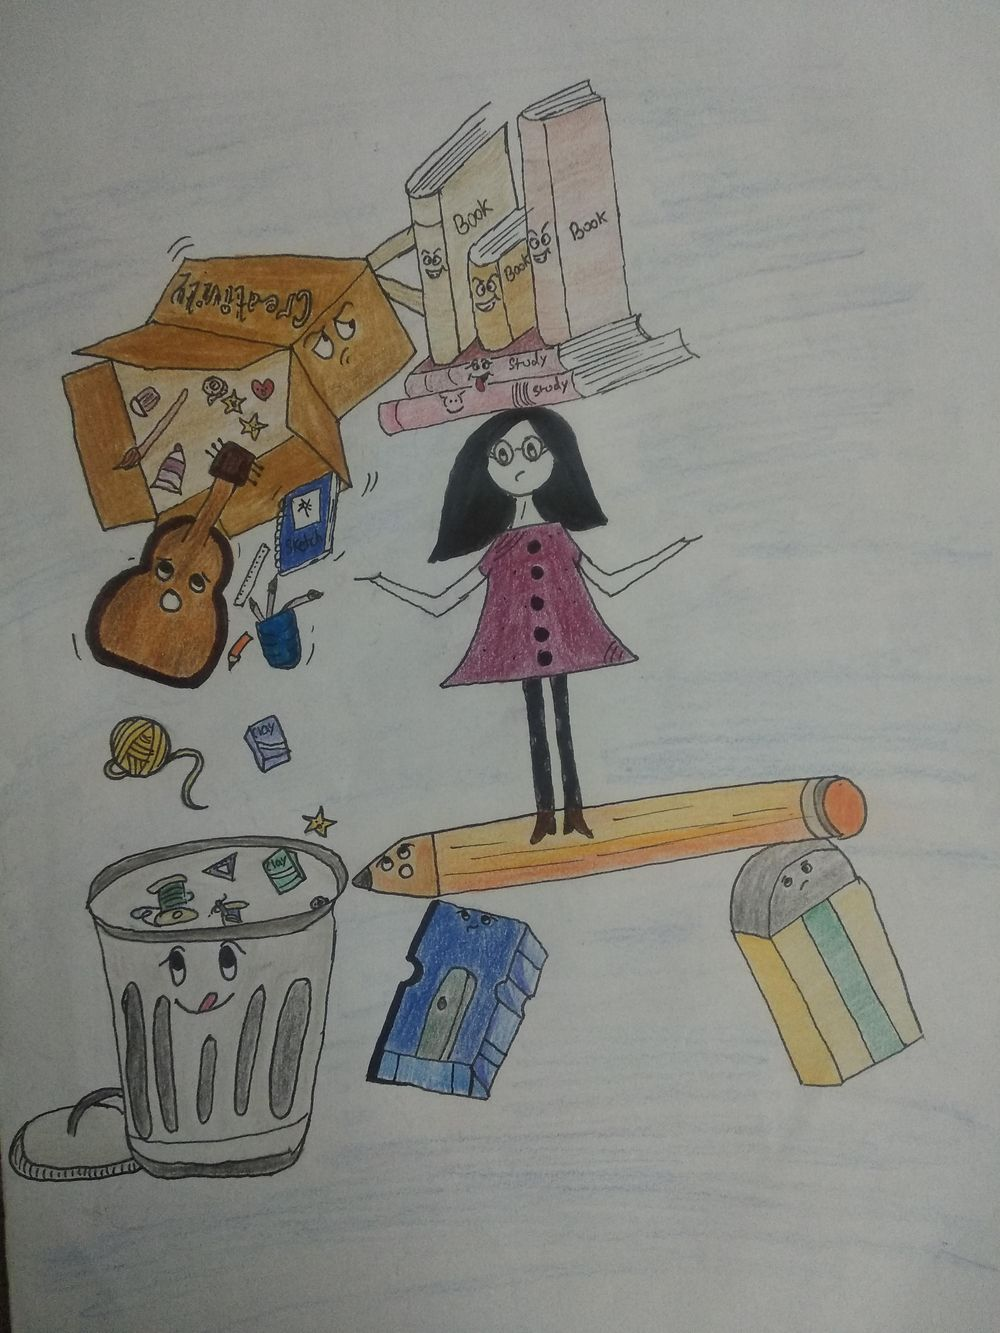 Doodle - image 1 - student project